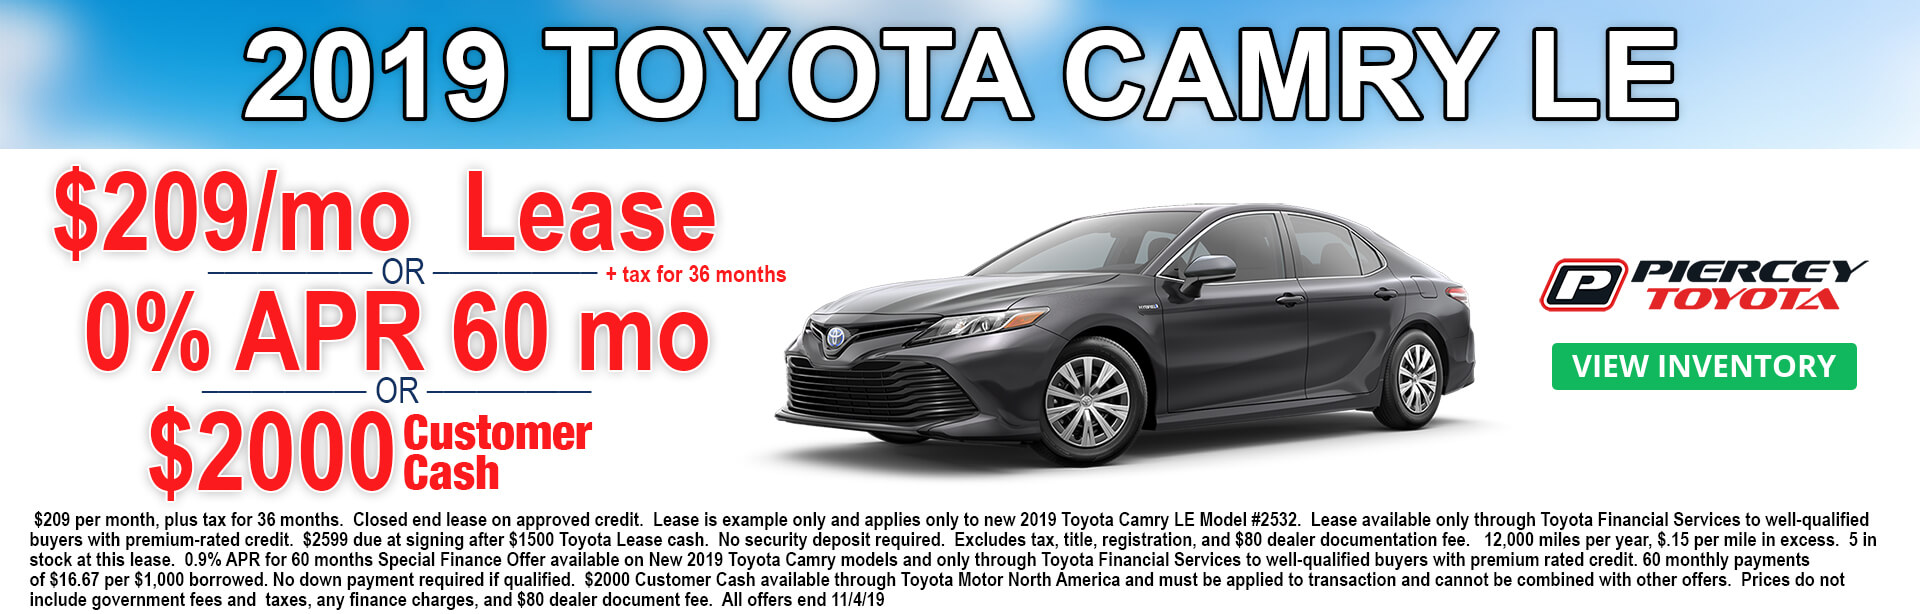 2019 Camry Special Offers $209 per month 36 months